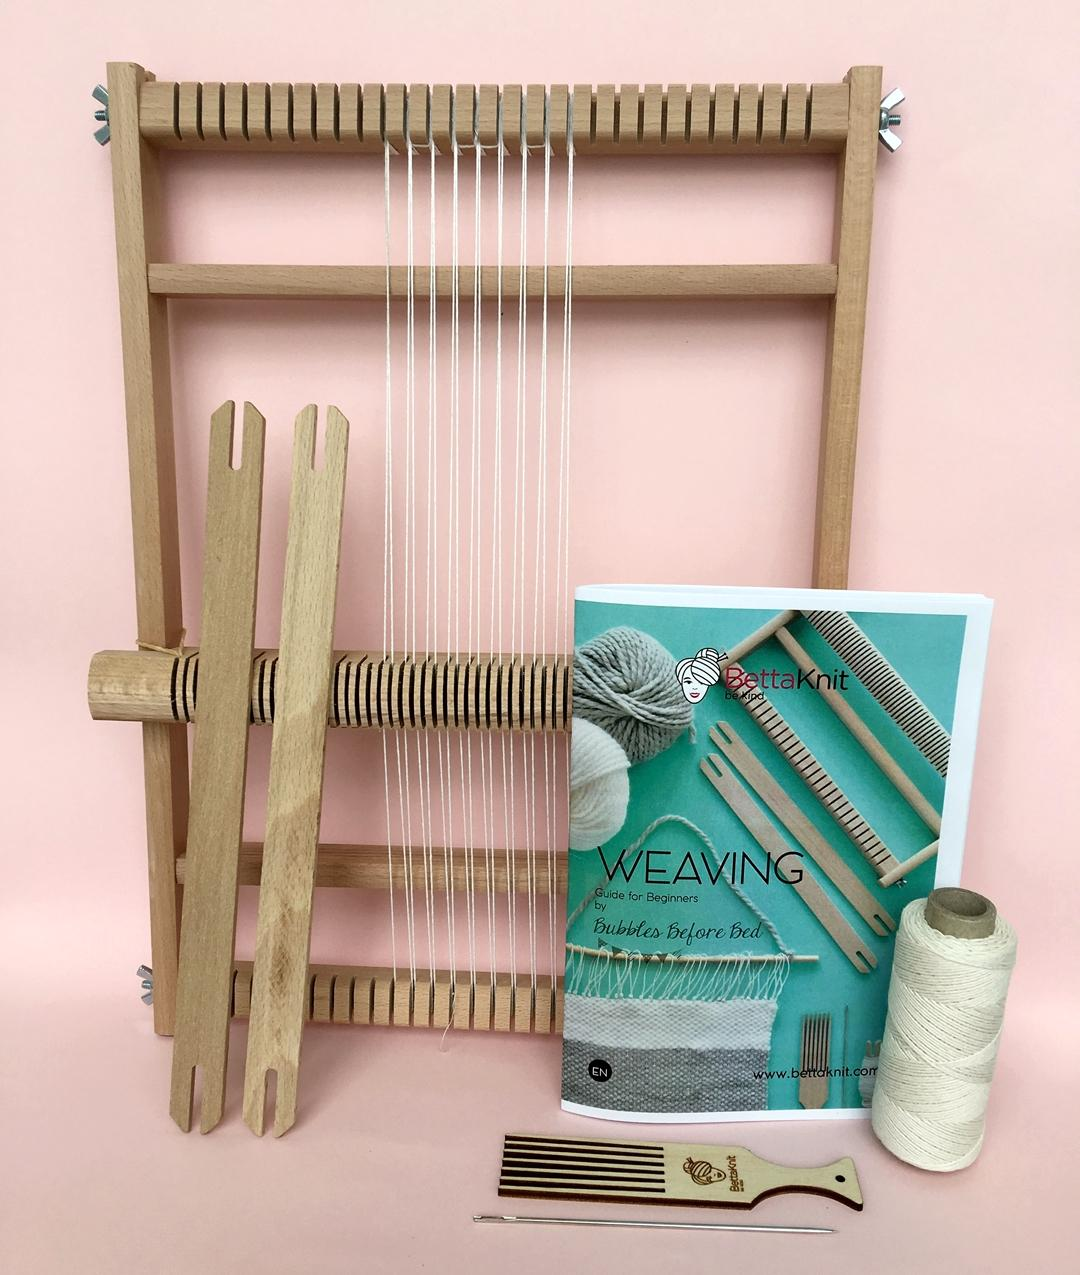 Weaving KitS - Weaving KitSWeaving KitS - Weaving KitS - BASE WEAVING KIT - 1